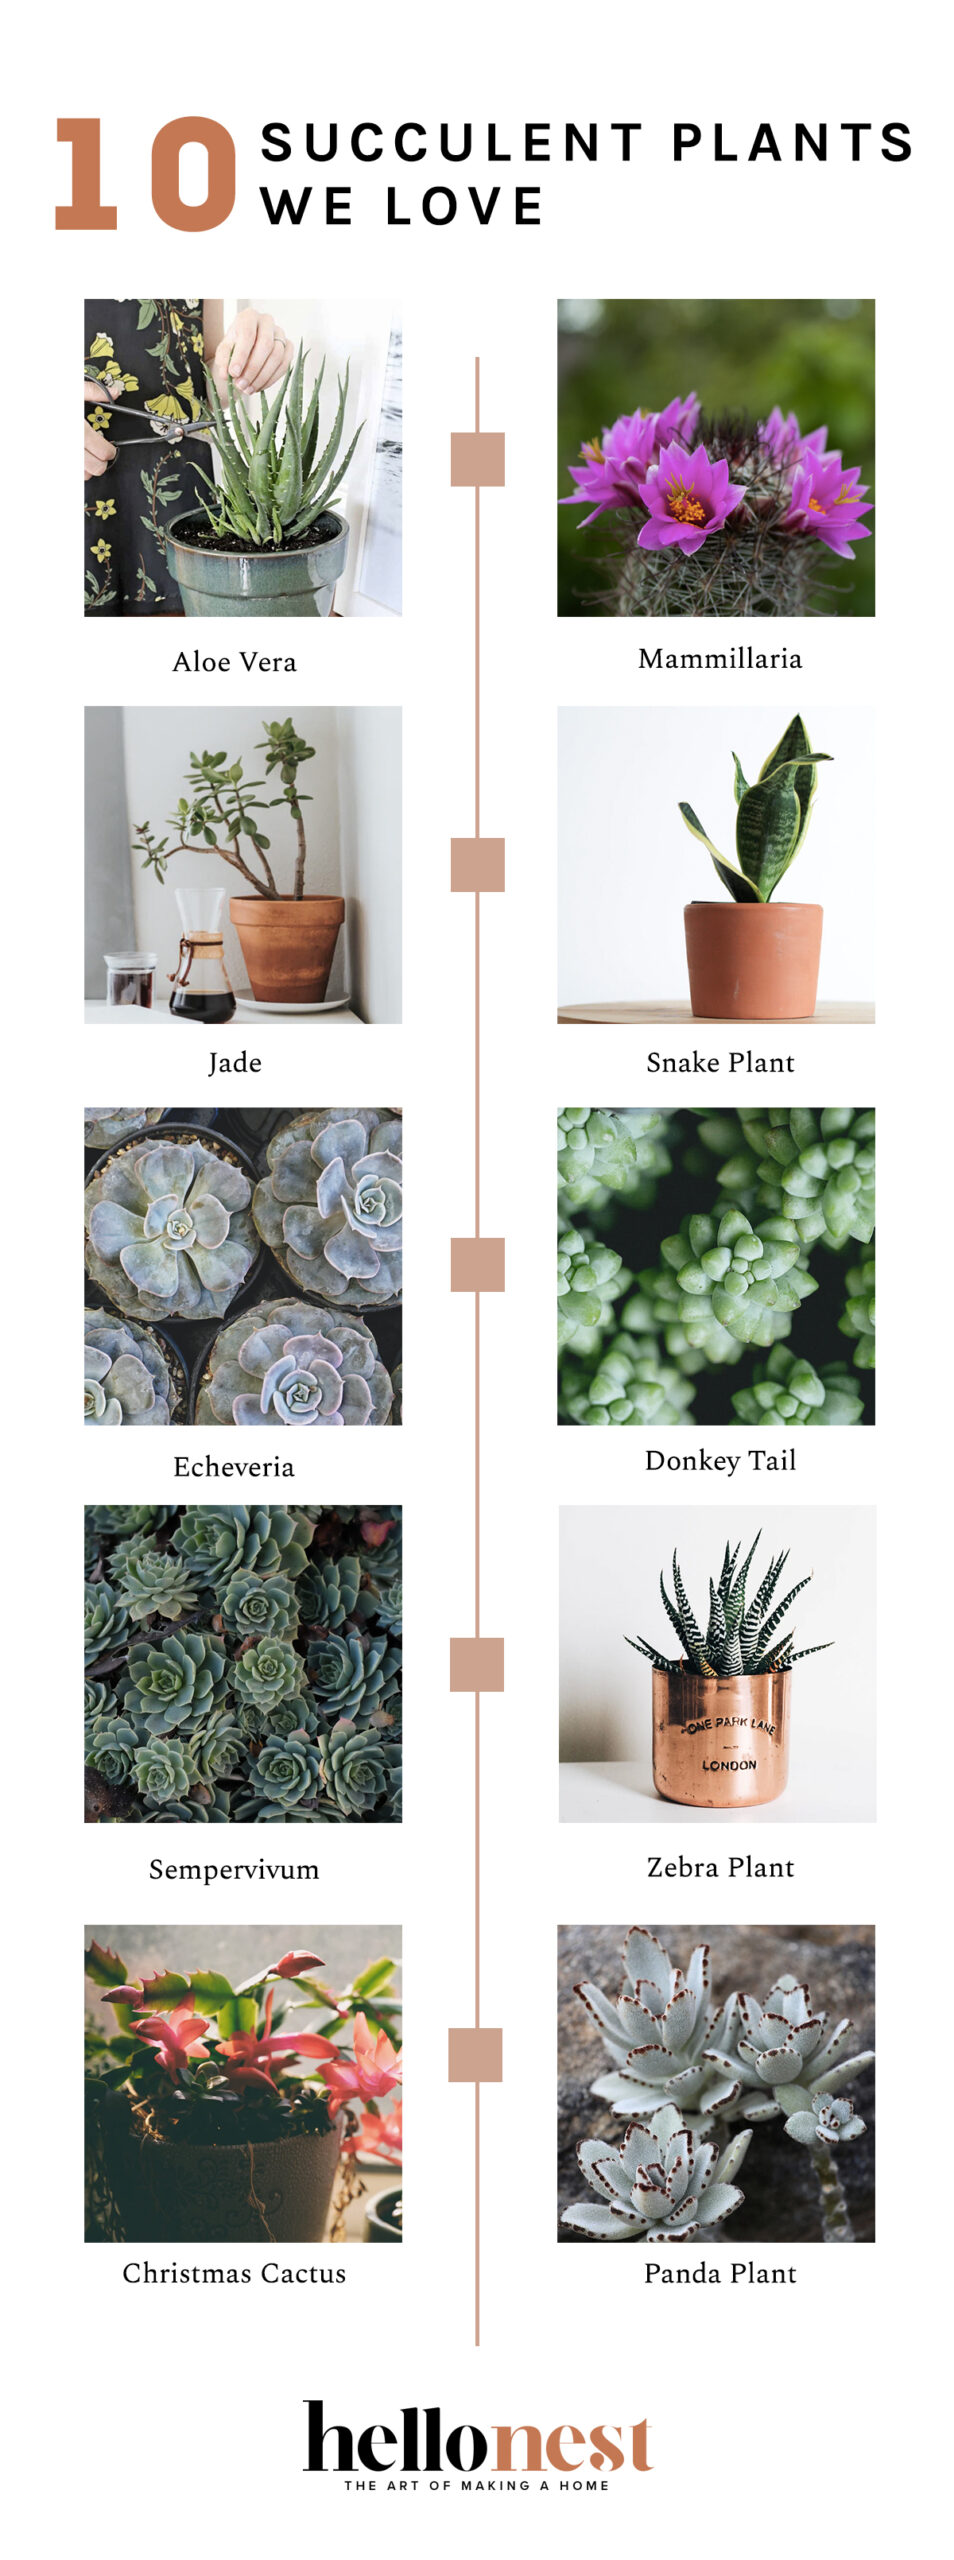 10 succulents we love + how to care for them - HelloNest.co